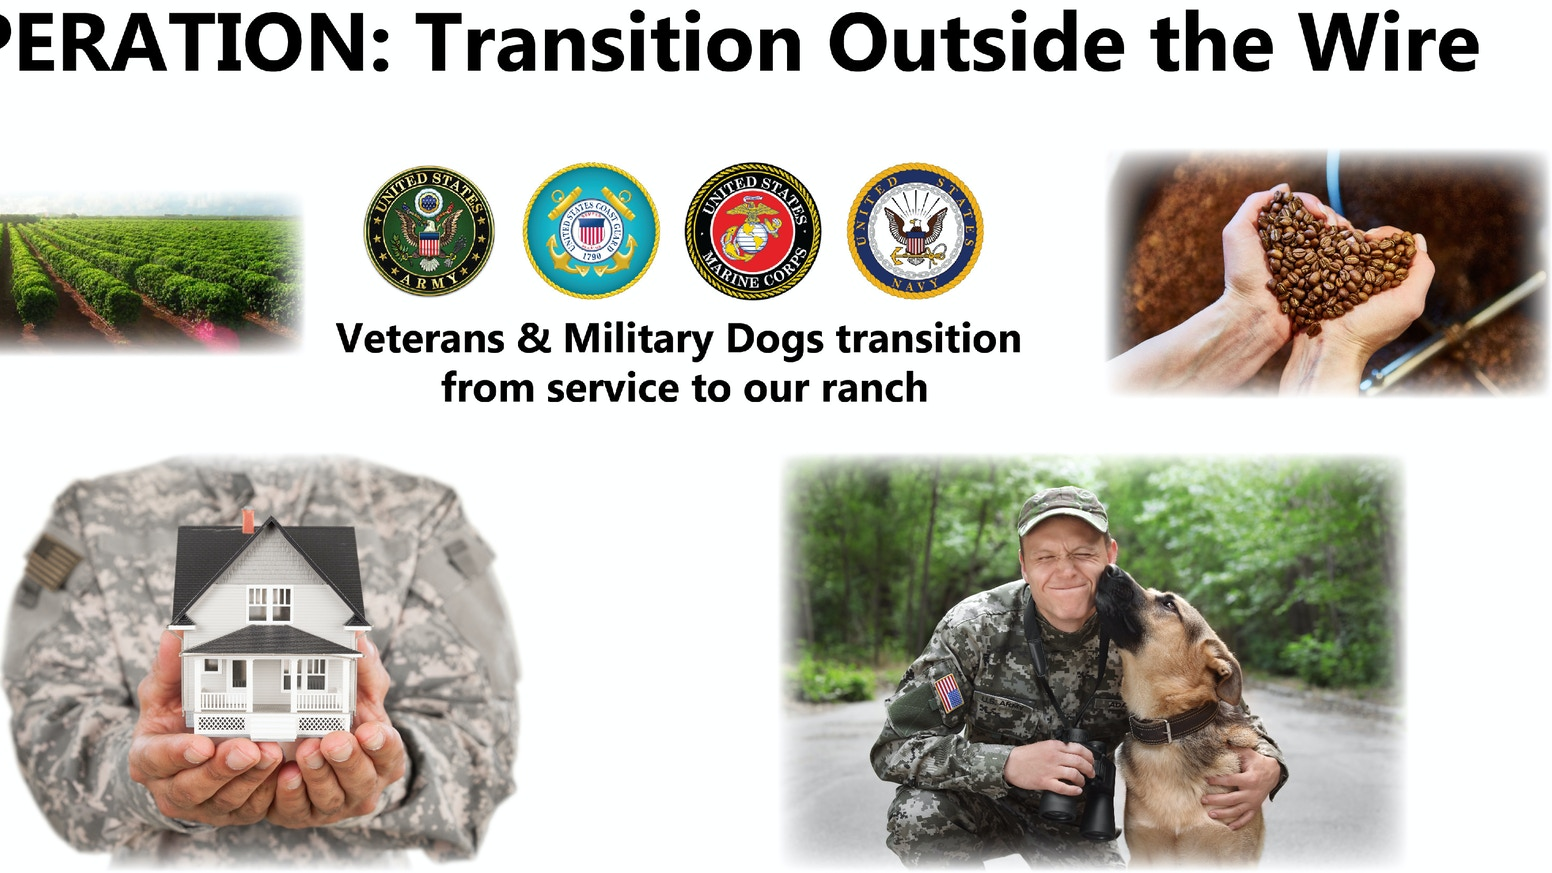 Operation: Transition Outside the Wire